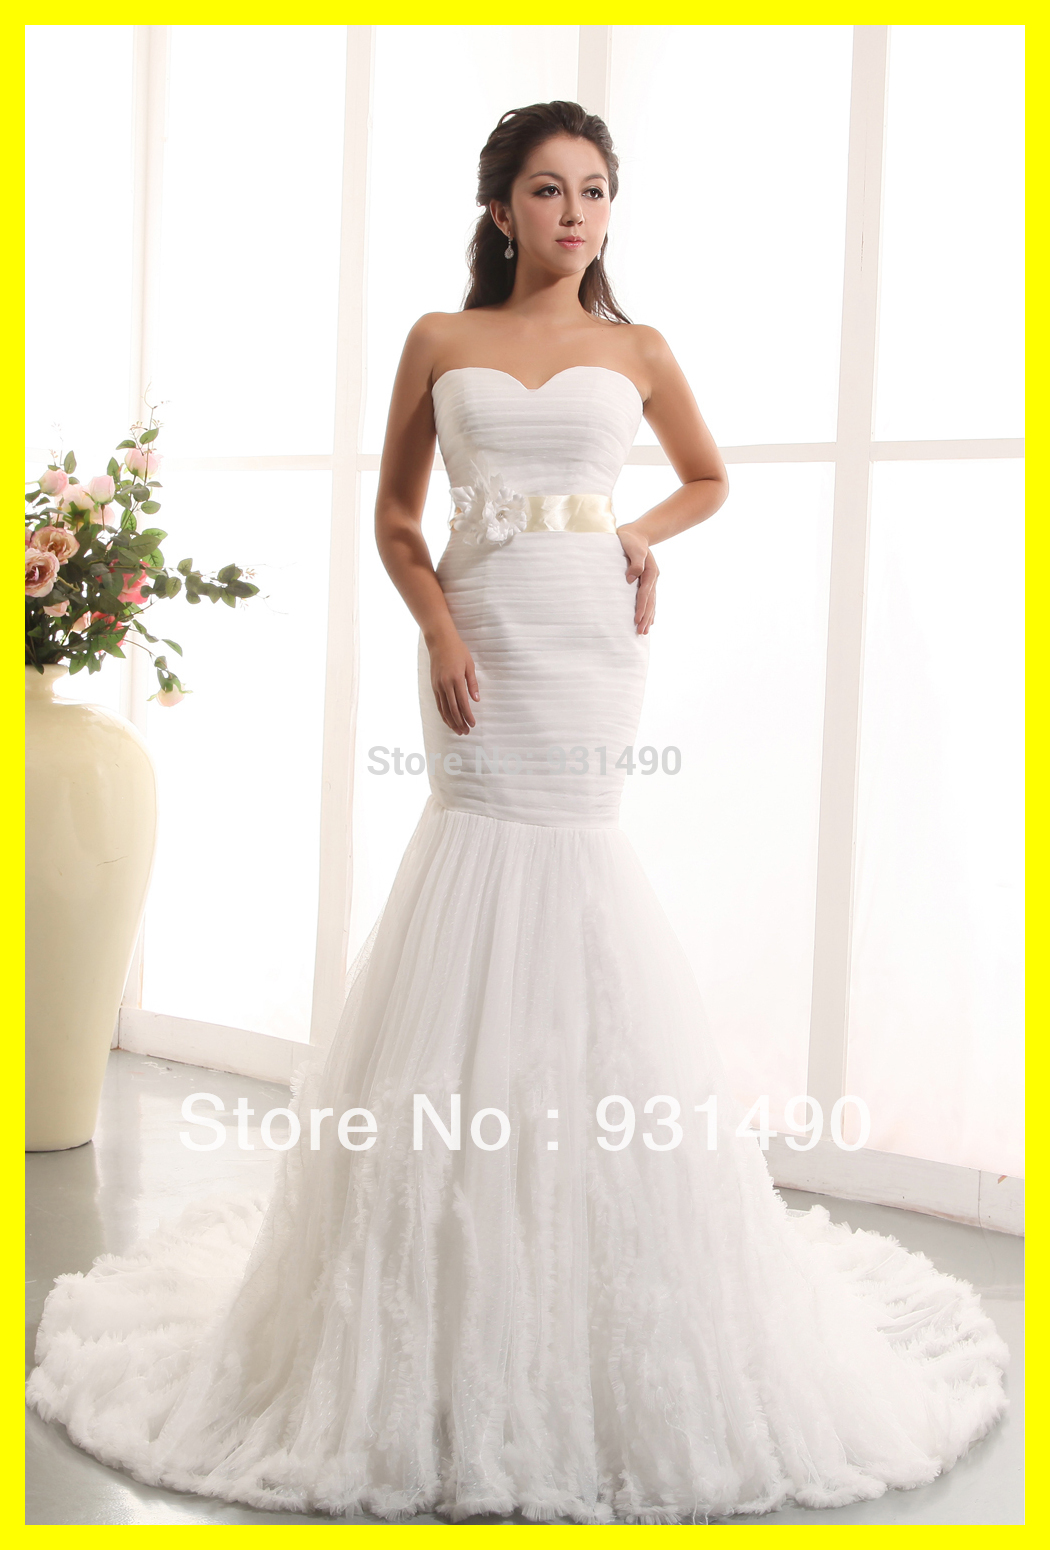 Cheap gypsy wedding dresses for sale discount wedding for Used cheap wedding dresses for sale